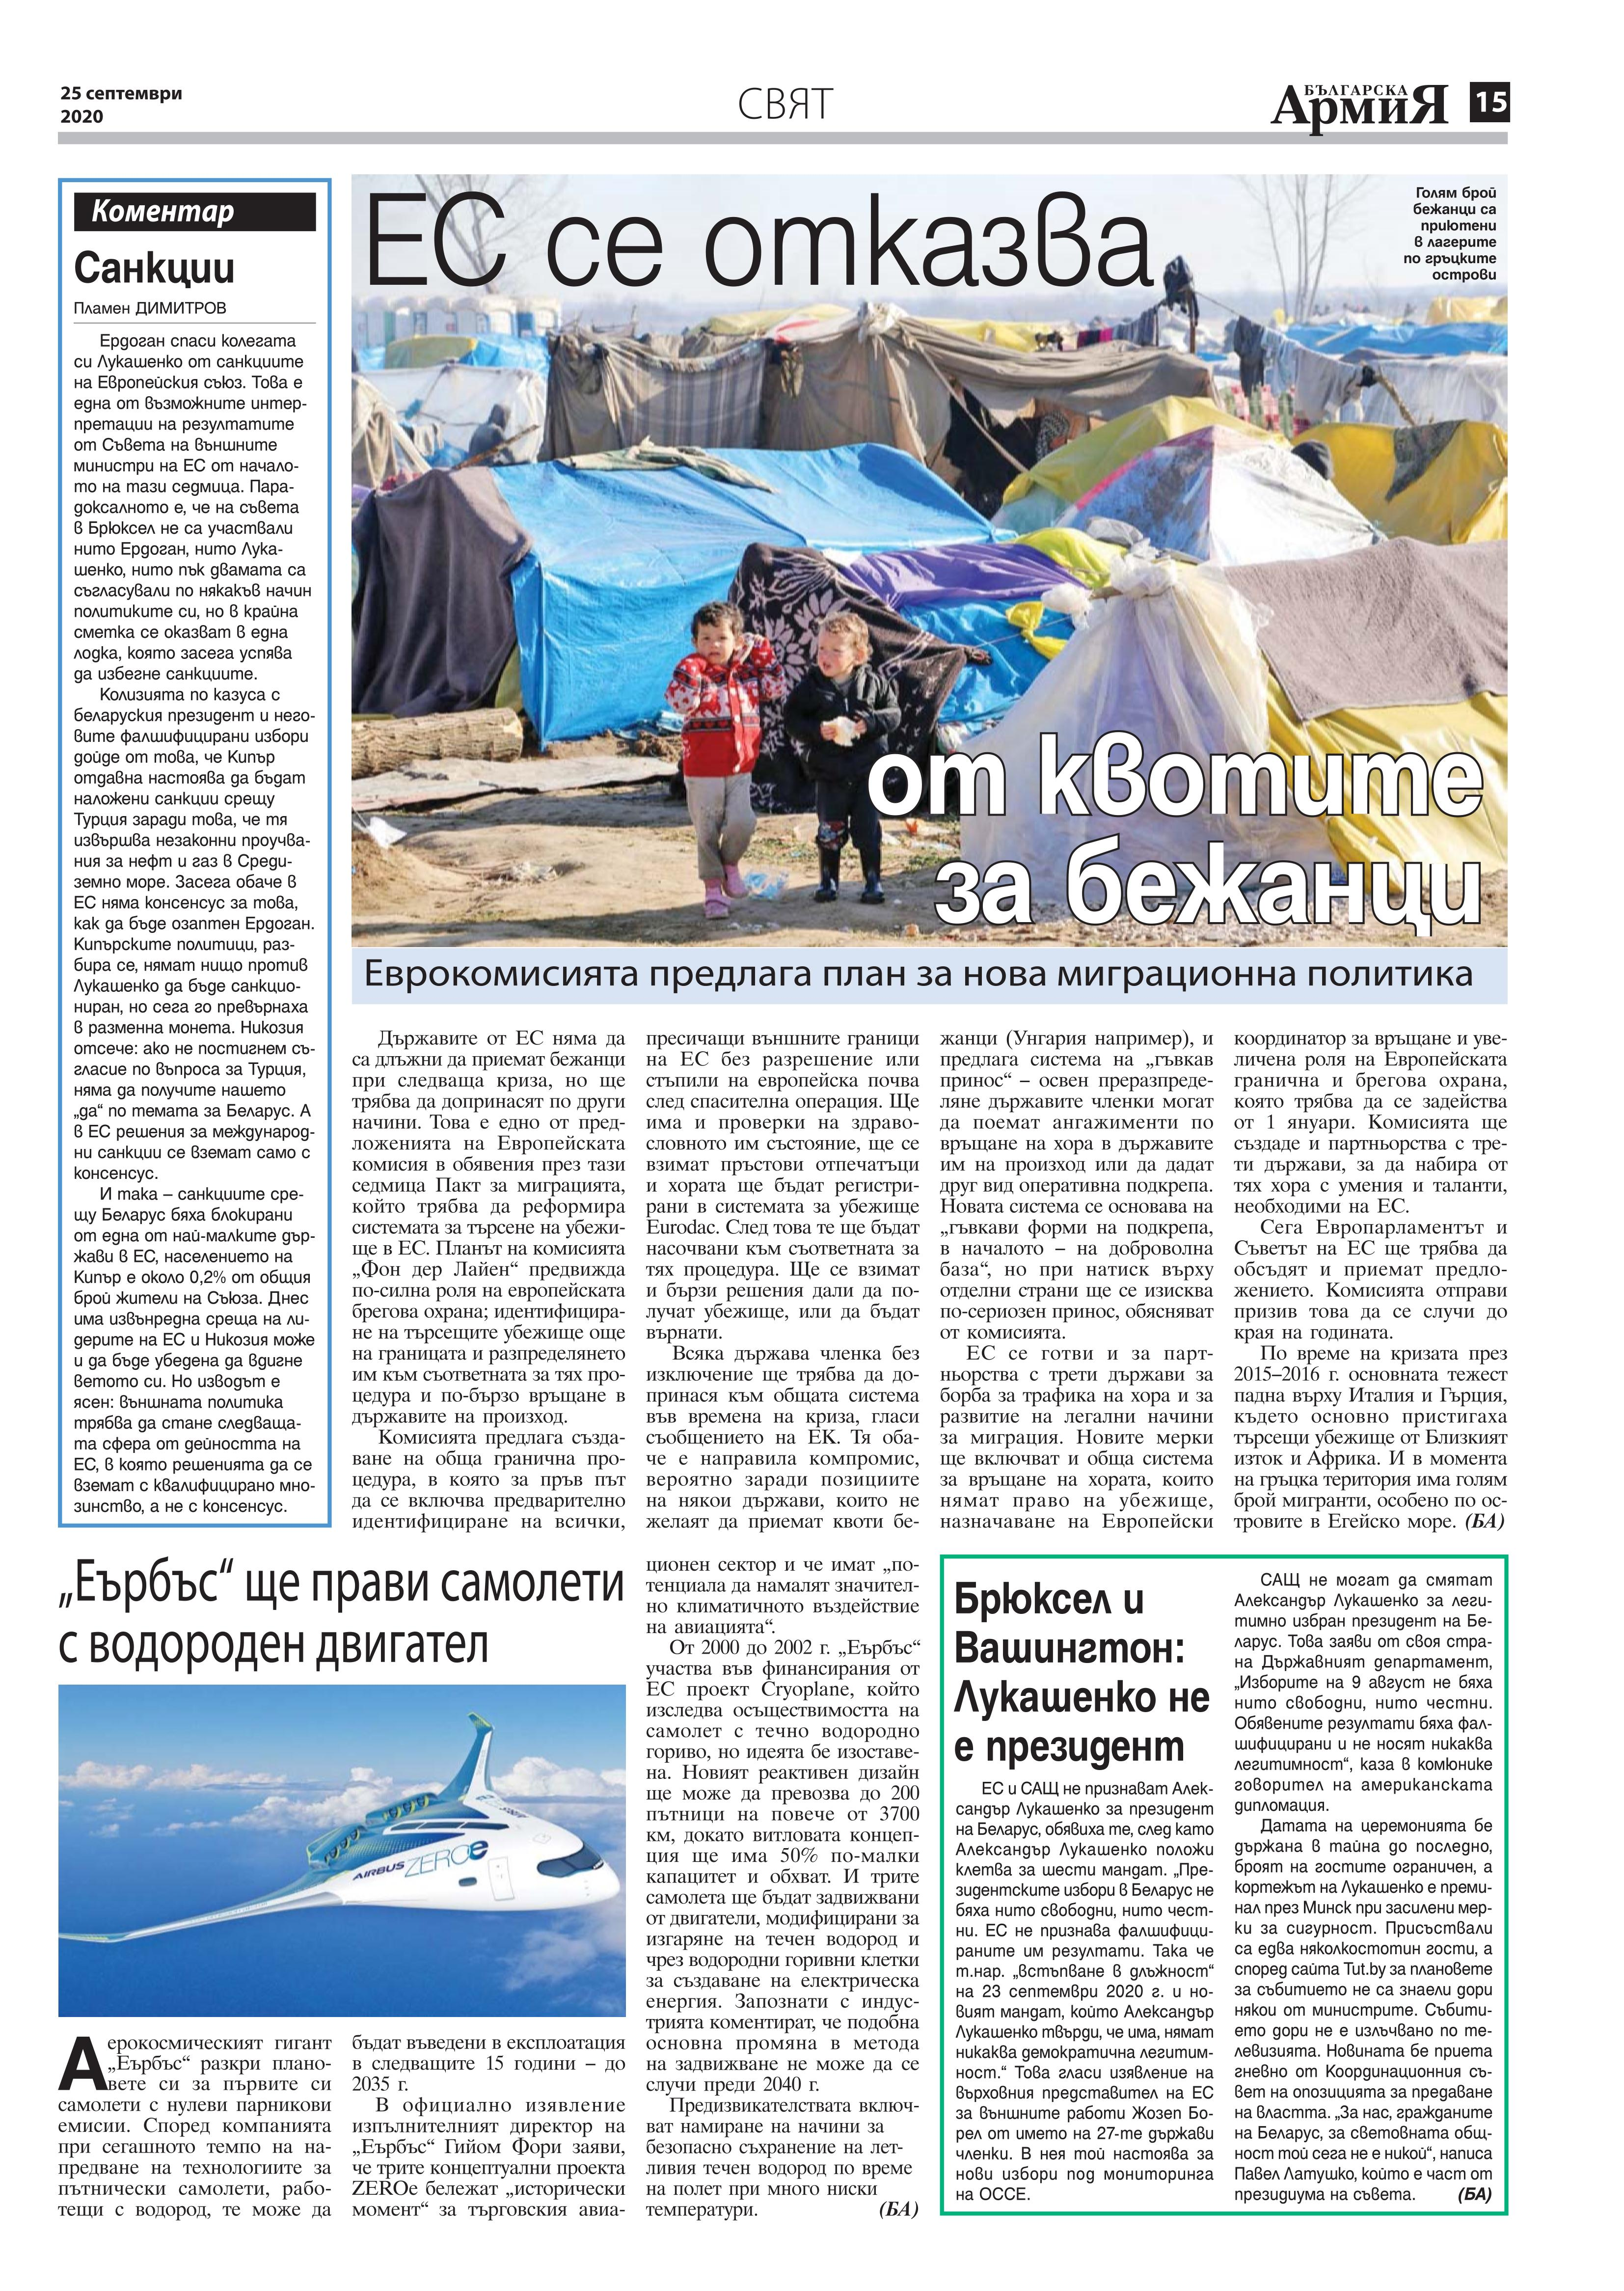 https://armymedia.bg/wp-content/uploads/2015/06/15.page1_-152.jpg